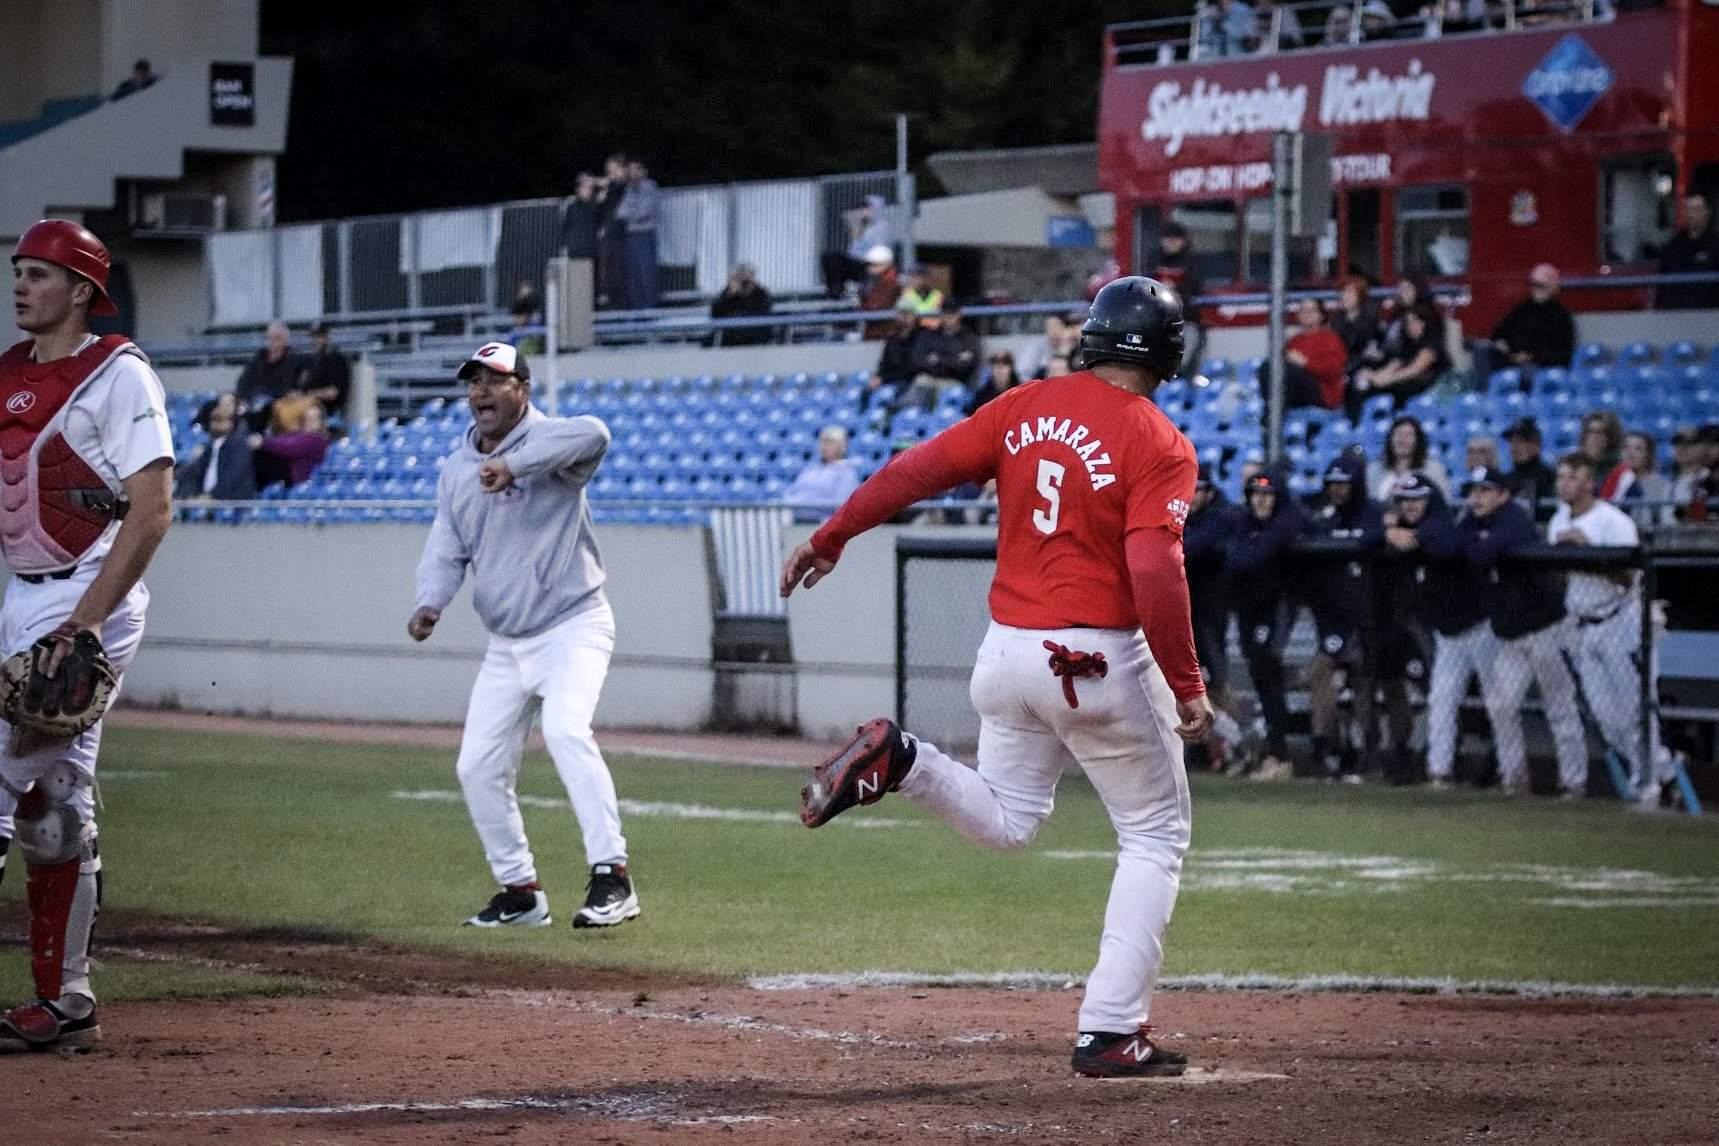 Harbourcats vs Cuba. Photo by Nathanael Laranjeiras